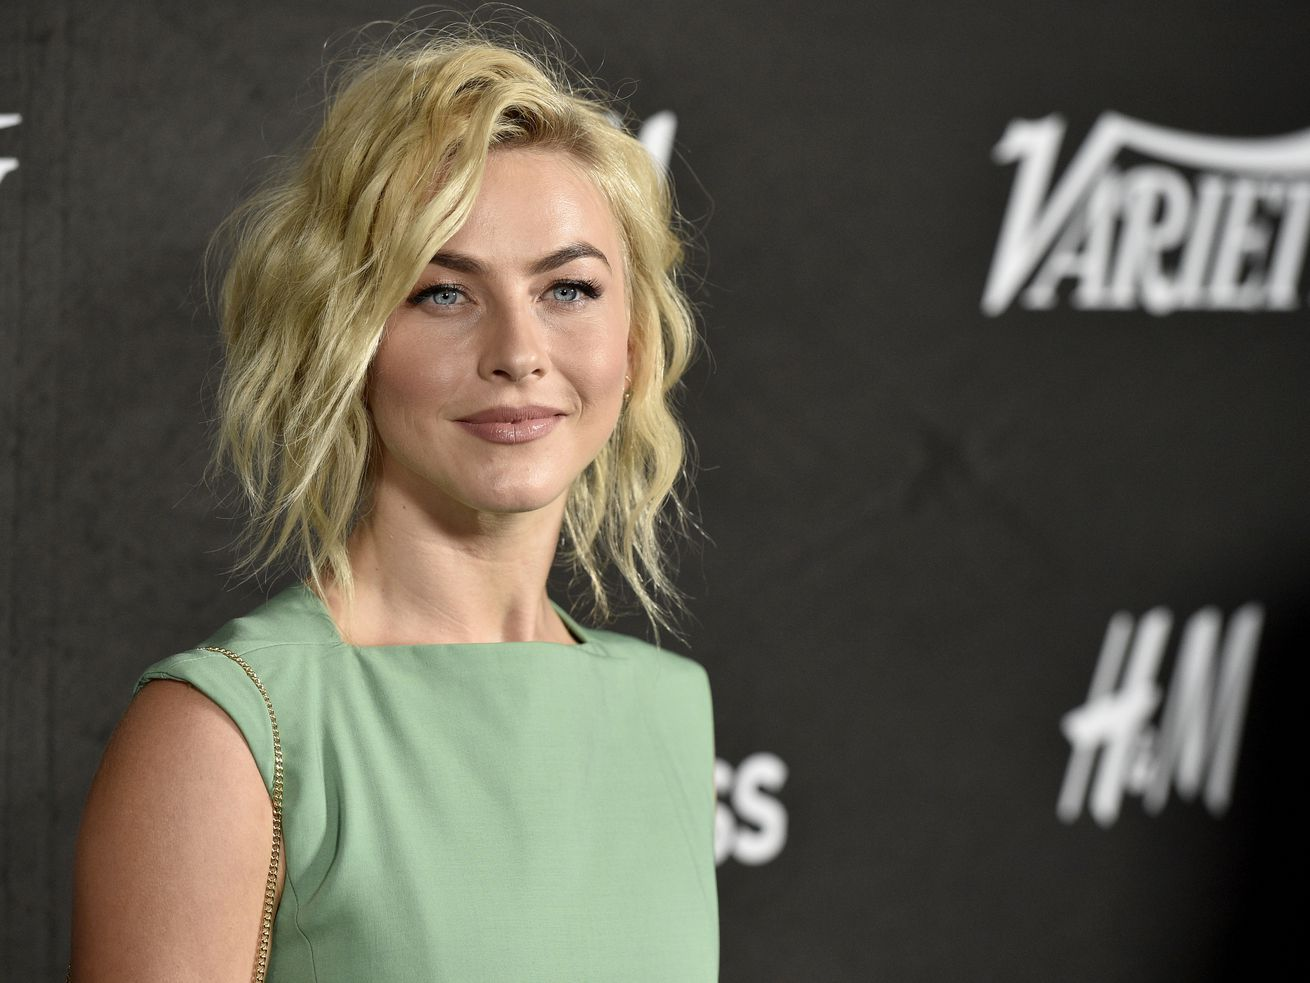 Julianne Hough just opened up about Gabrielle Union leaving 'America's Got Talent'